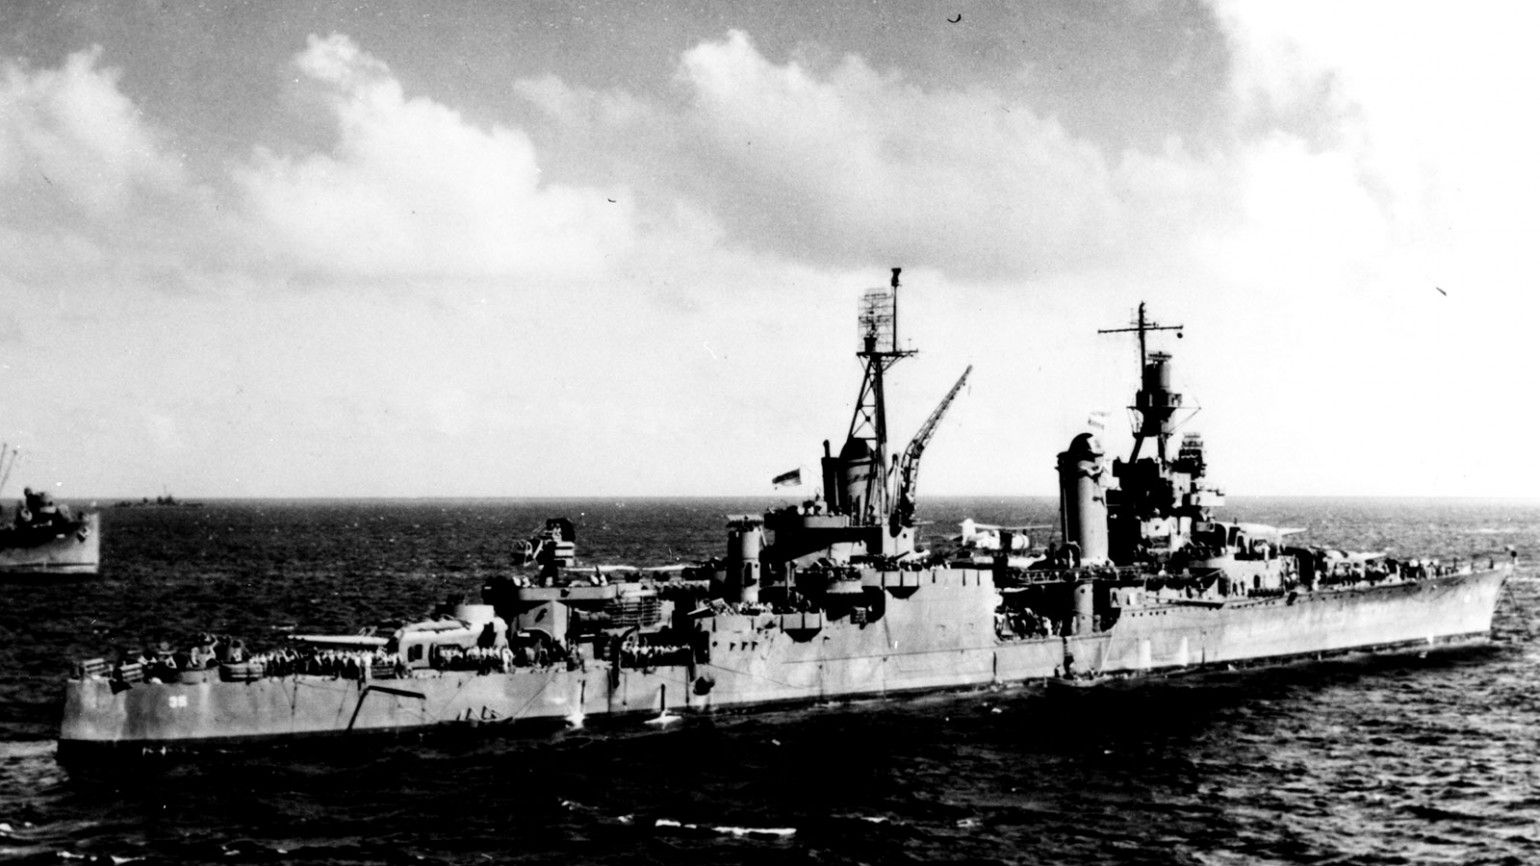 USS Indianapolis ship sailing through waters. Photo courtesy of Alfred J. Sedivi Collection - USNI.